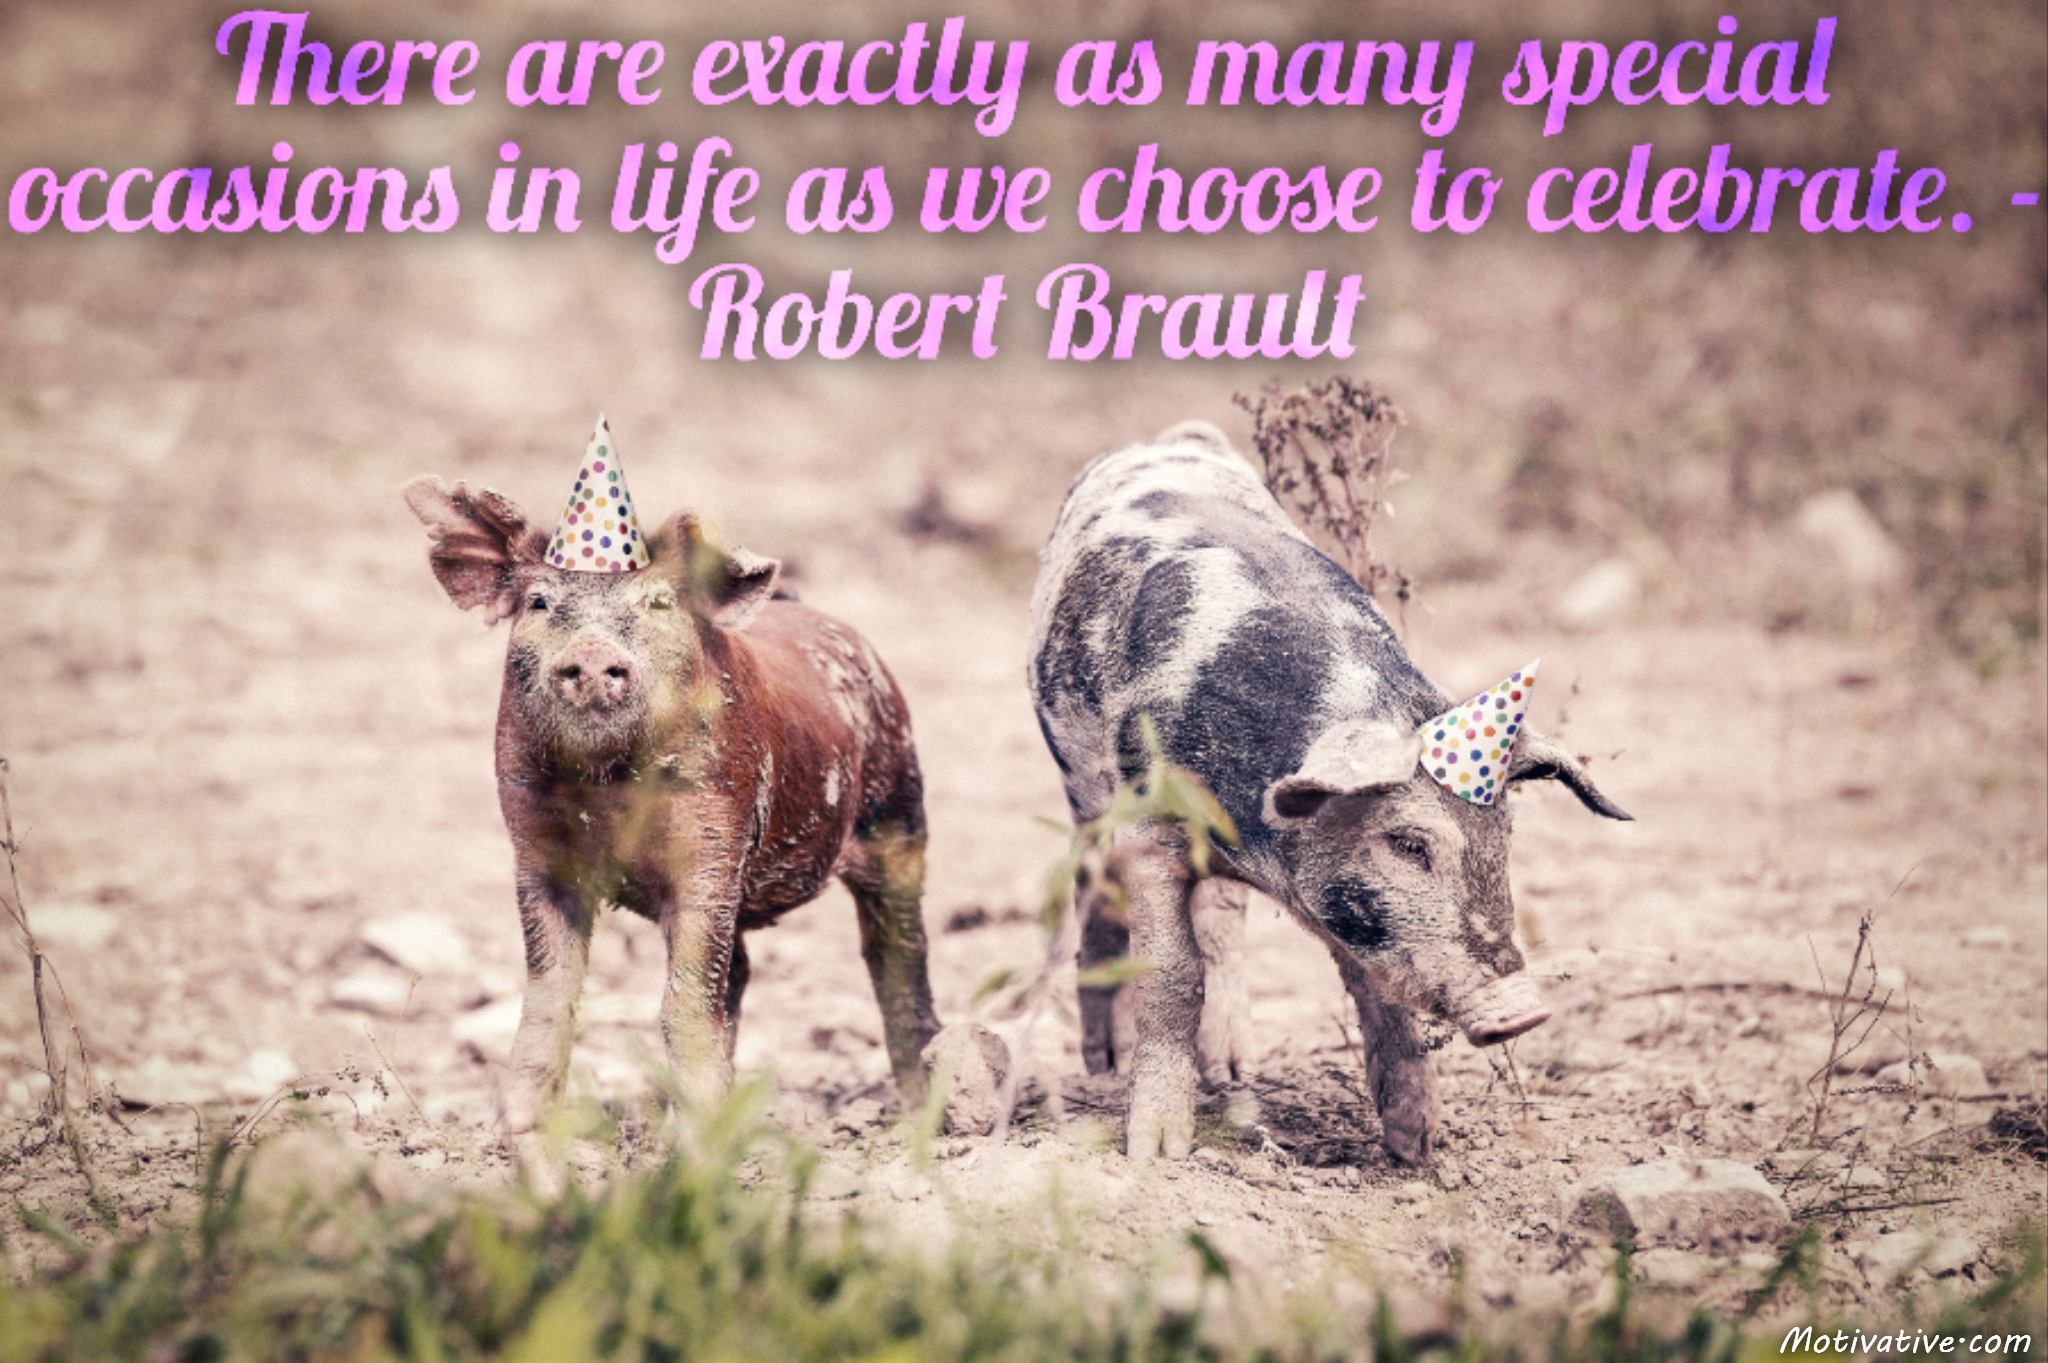 There are exactly as many special occasions in life as we choose to celebrate. – Robert Brault